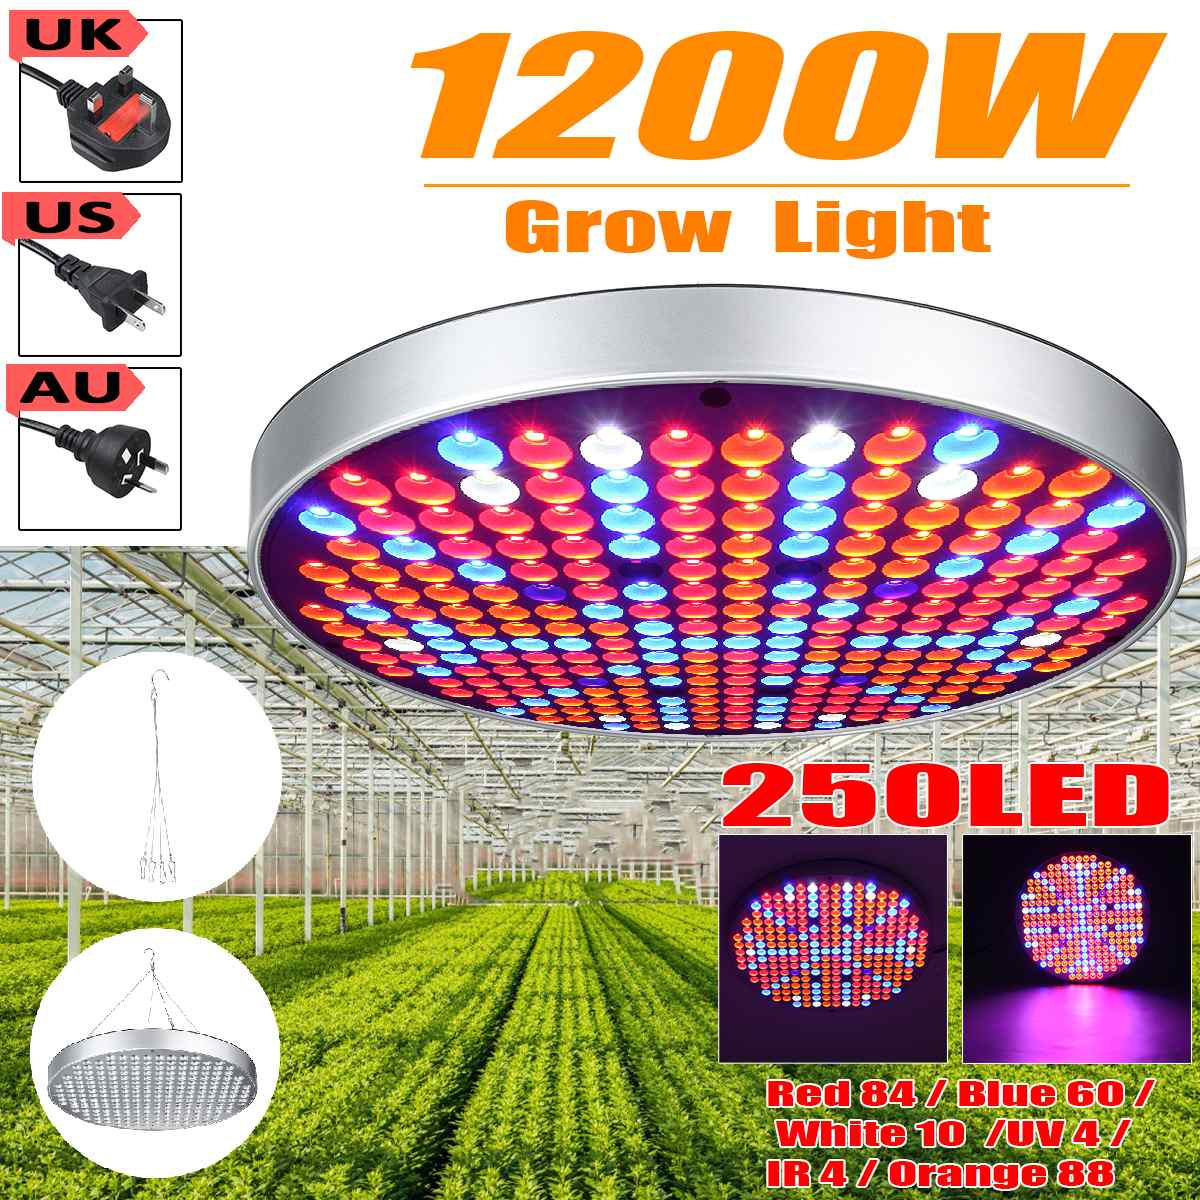 1200W Growing Lamps LED Grow Light AC85-265V Full Spectrum Plant Lighting Fitolampy For Plants Flowers Seedling Cultivation